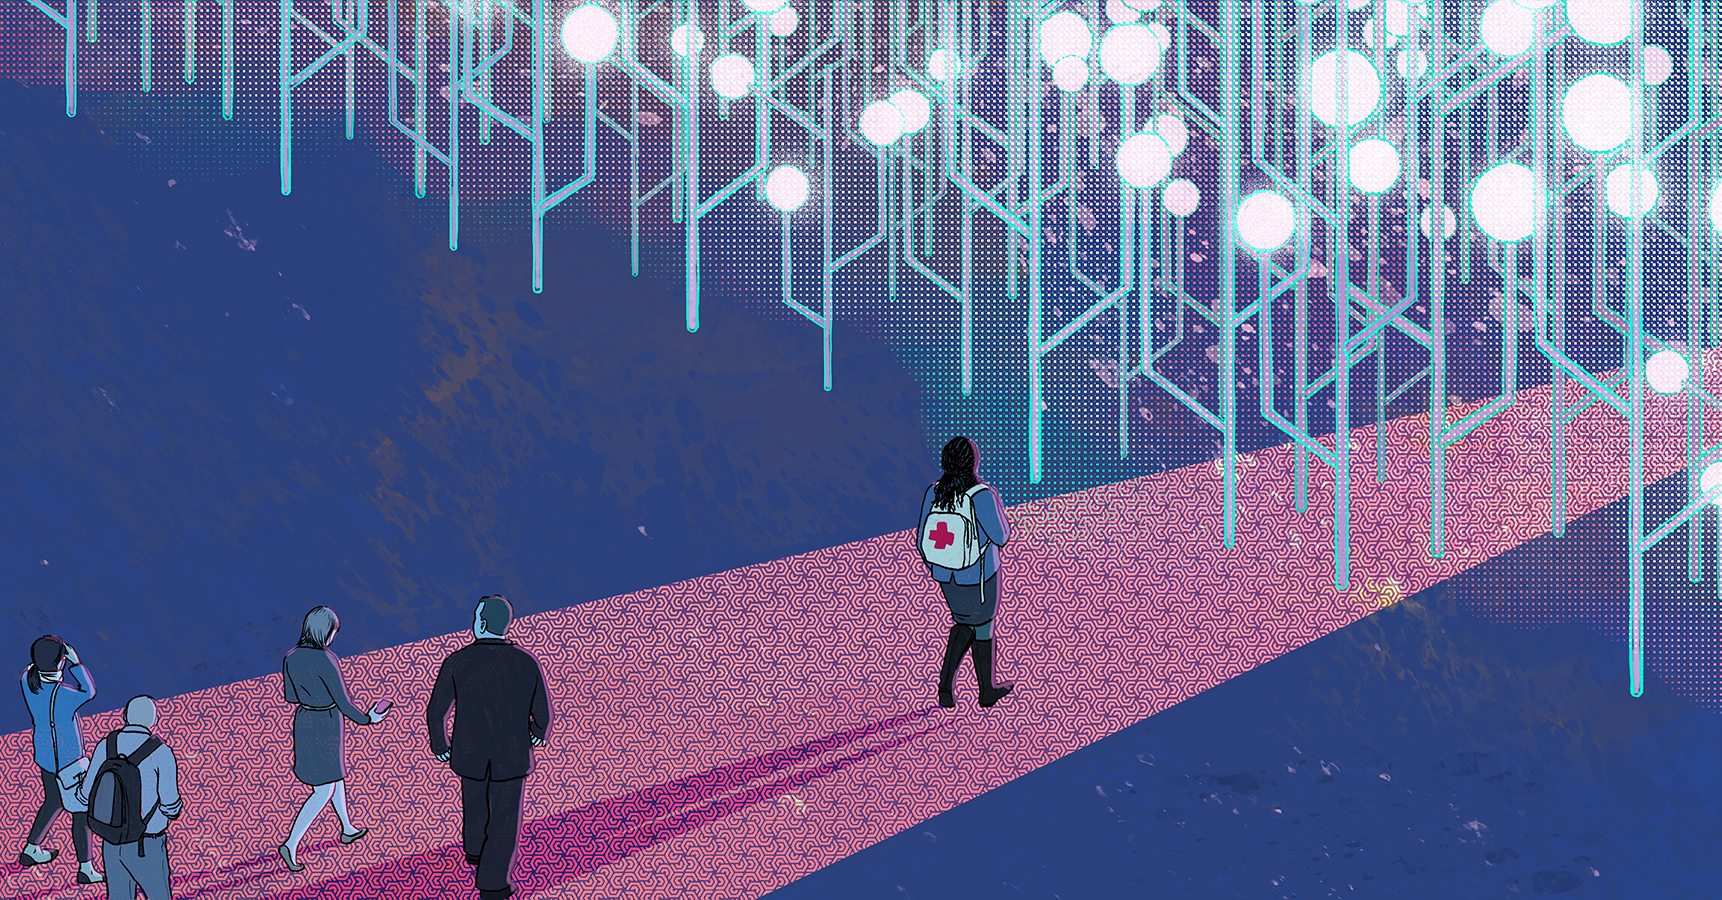 image of people walking on a red carpet toward shining overhead lights.